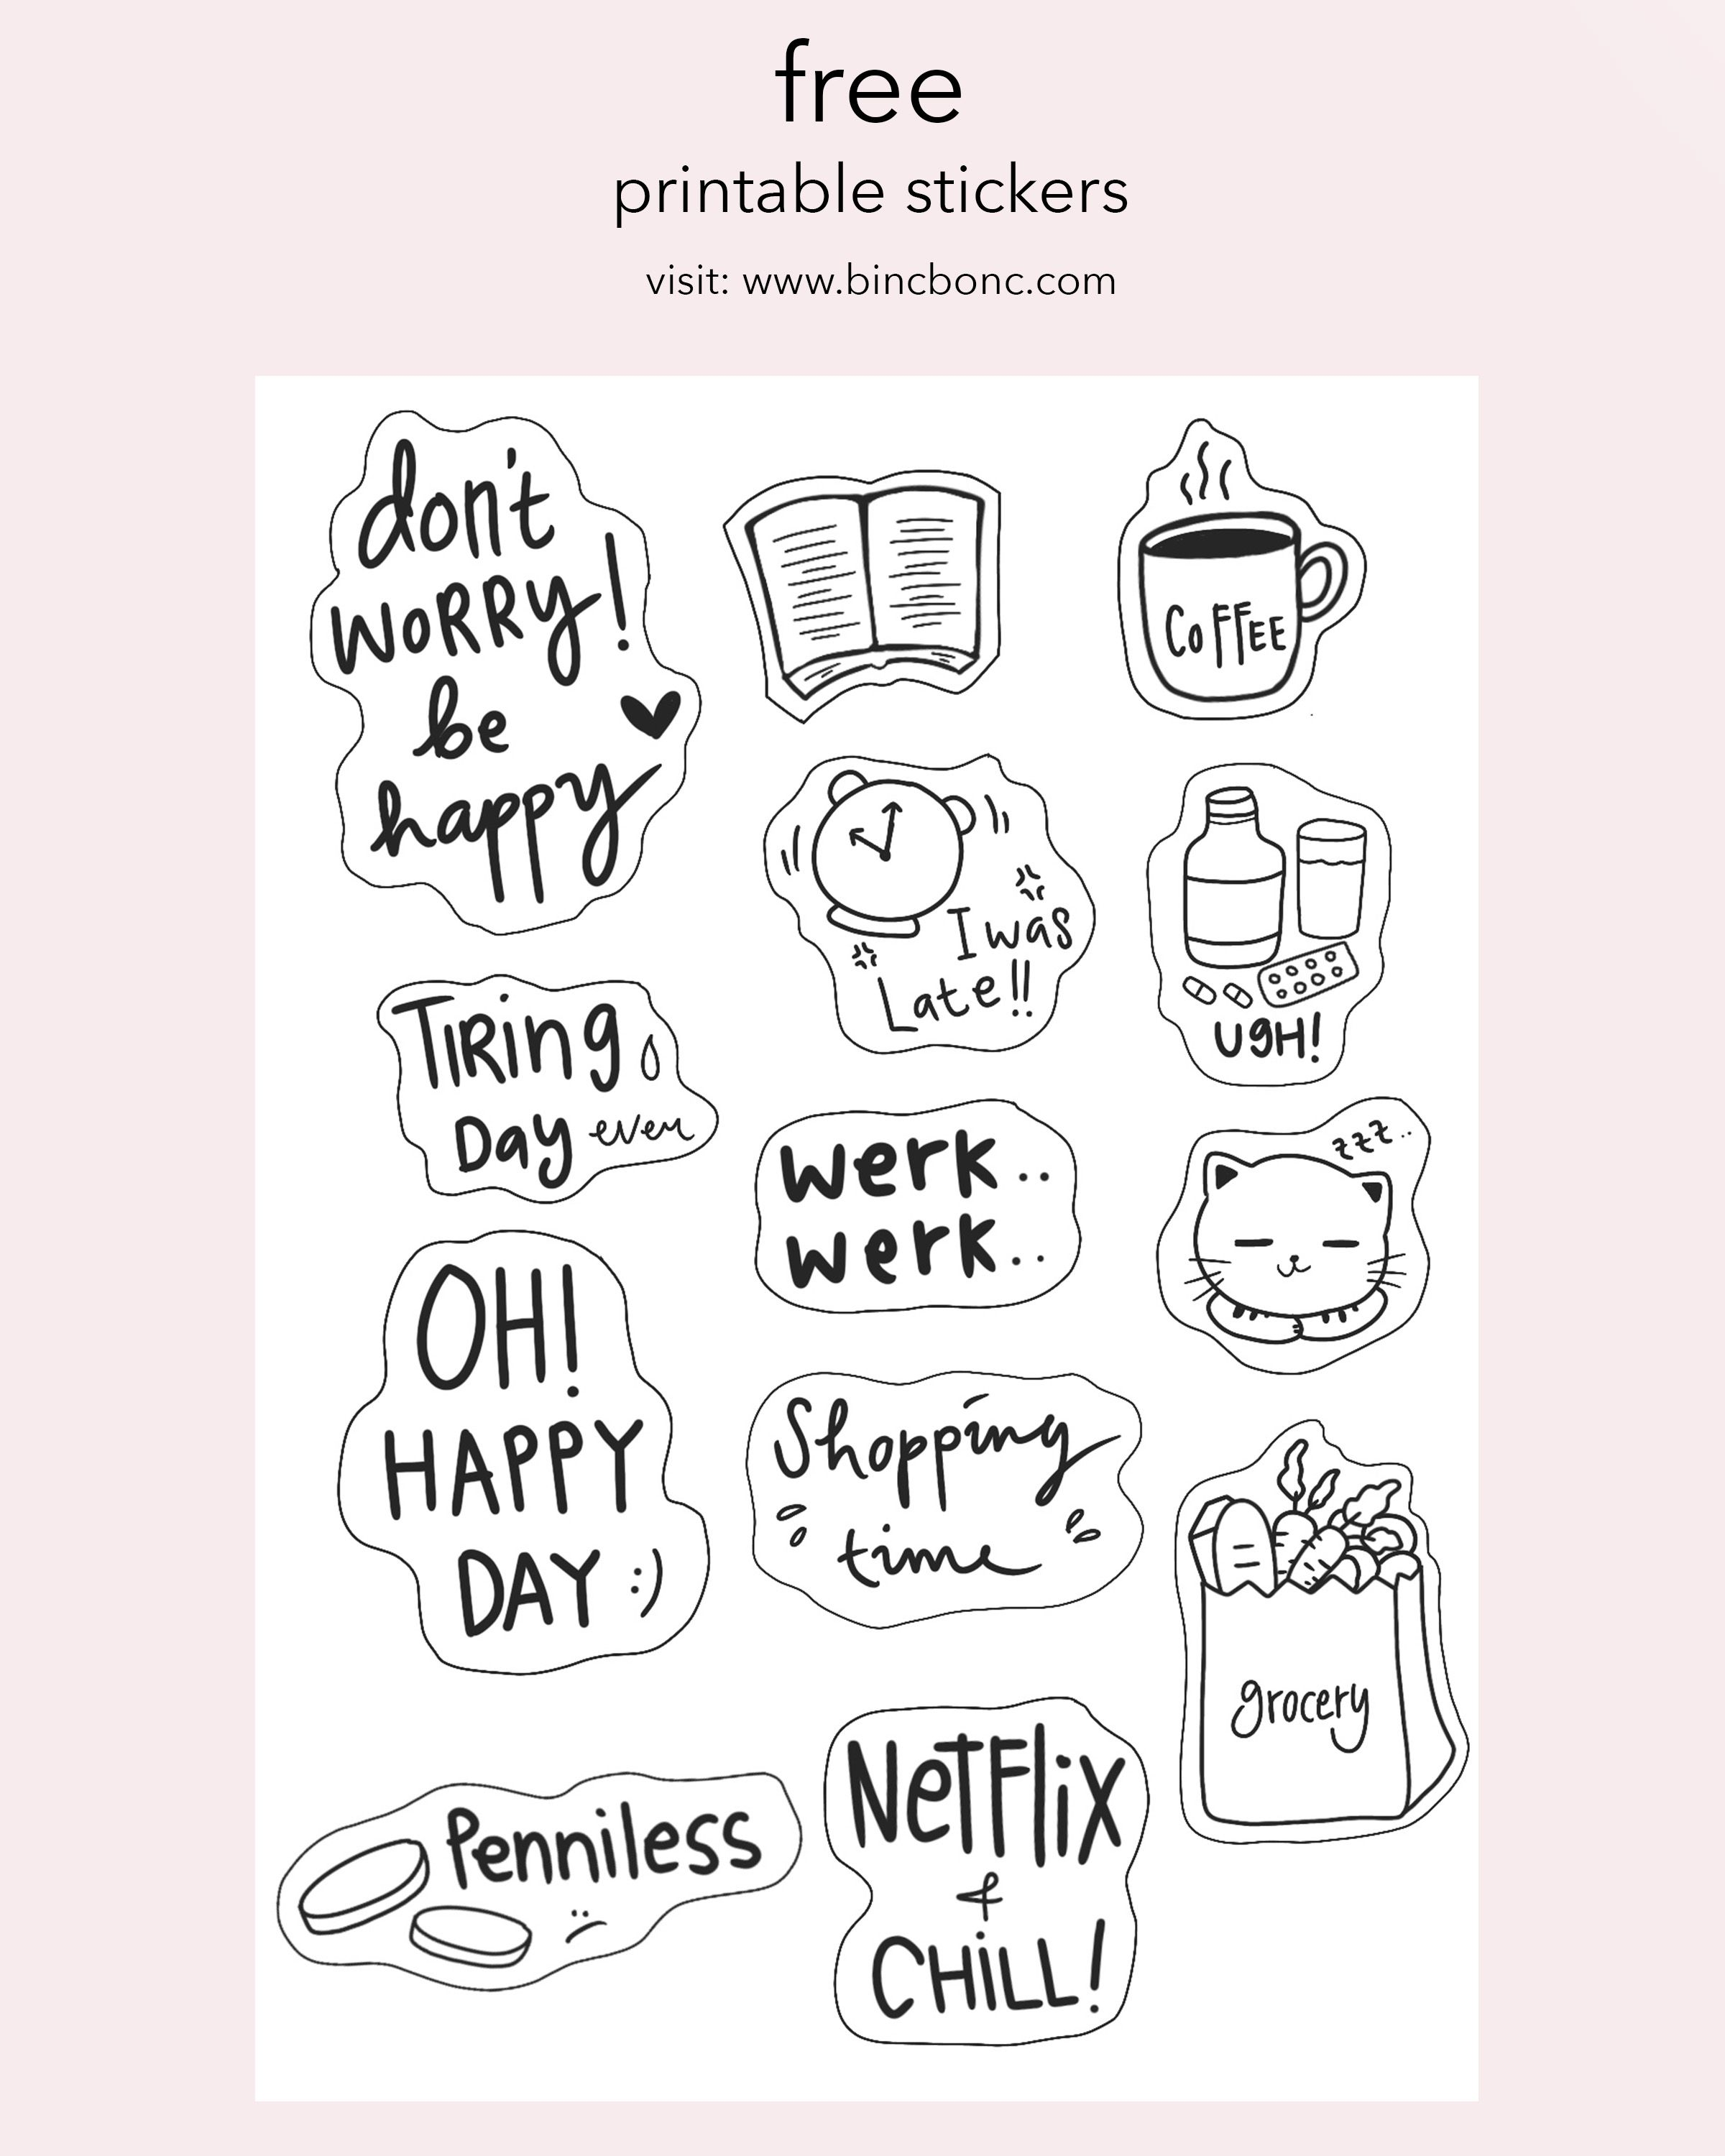 Daily Life Stickers Printable stickers, Free printable